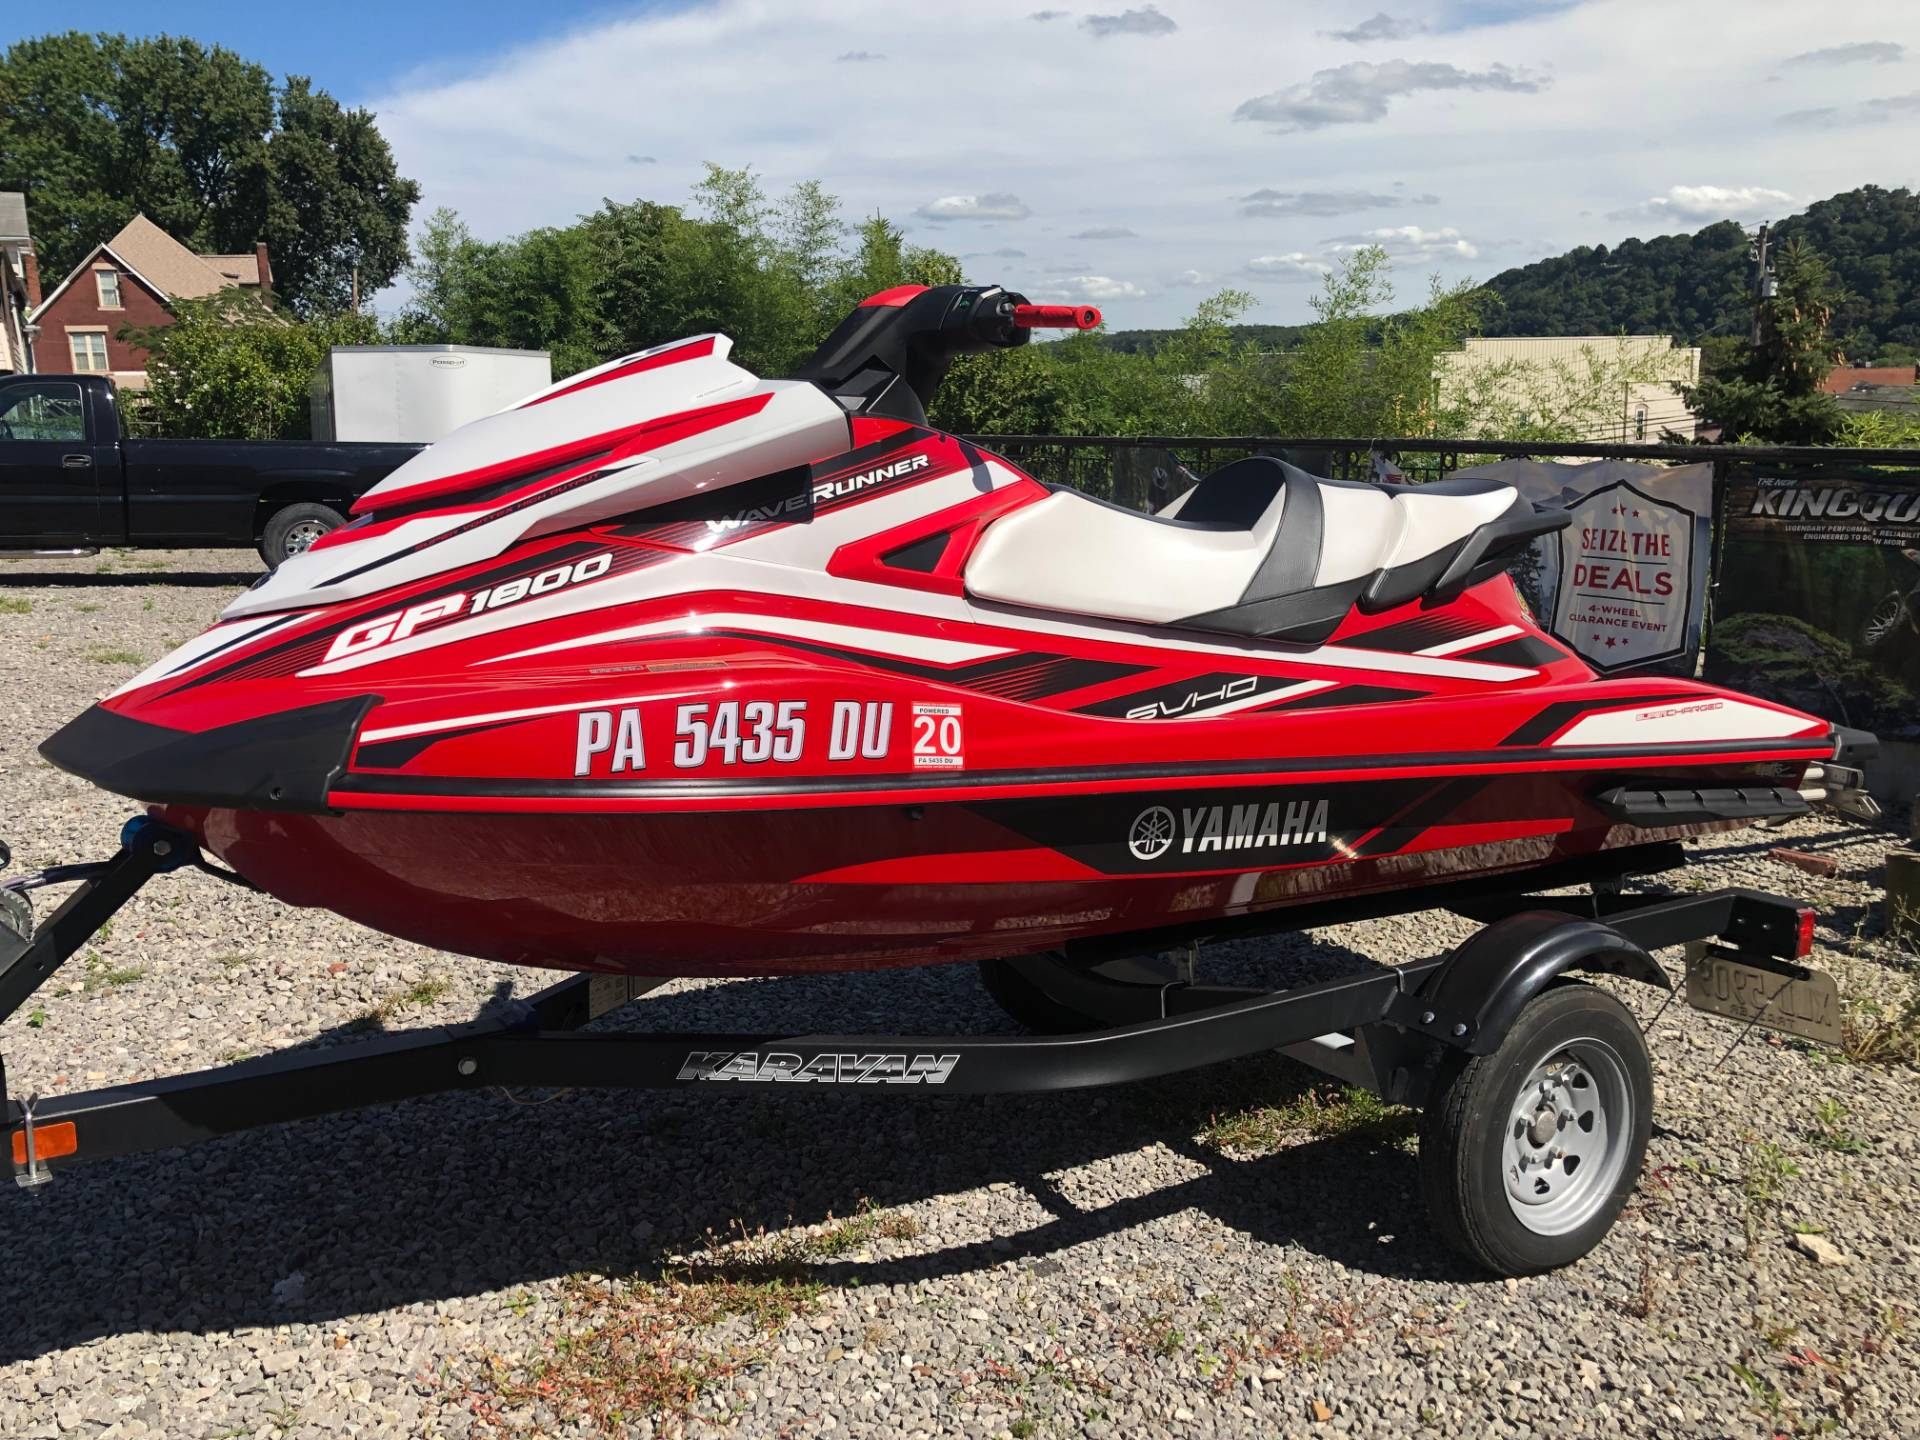 2017 Yamaha GP 1800 in Tarentum, Pennsylvania - Photo 1